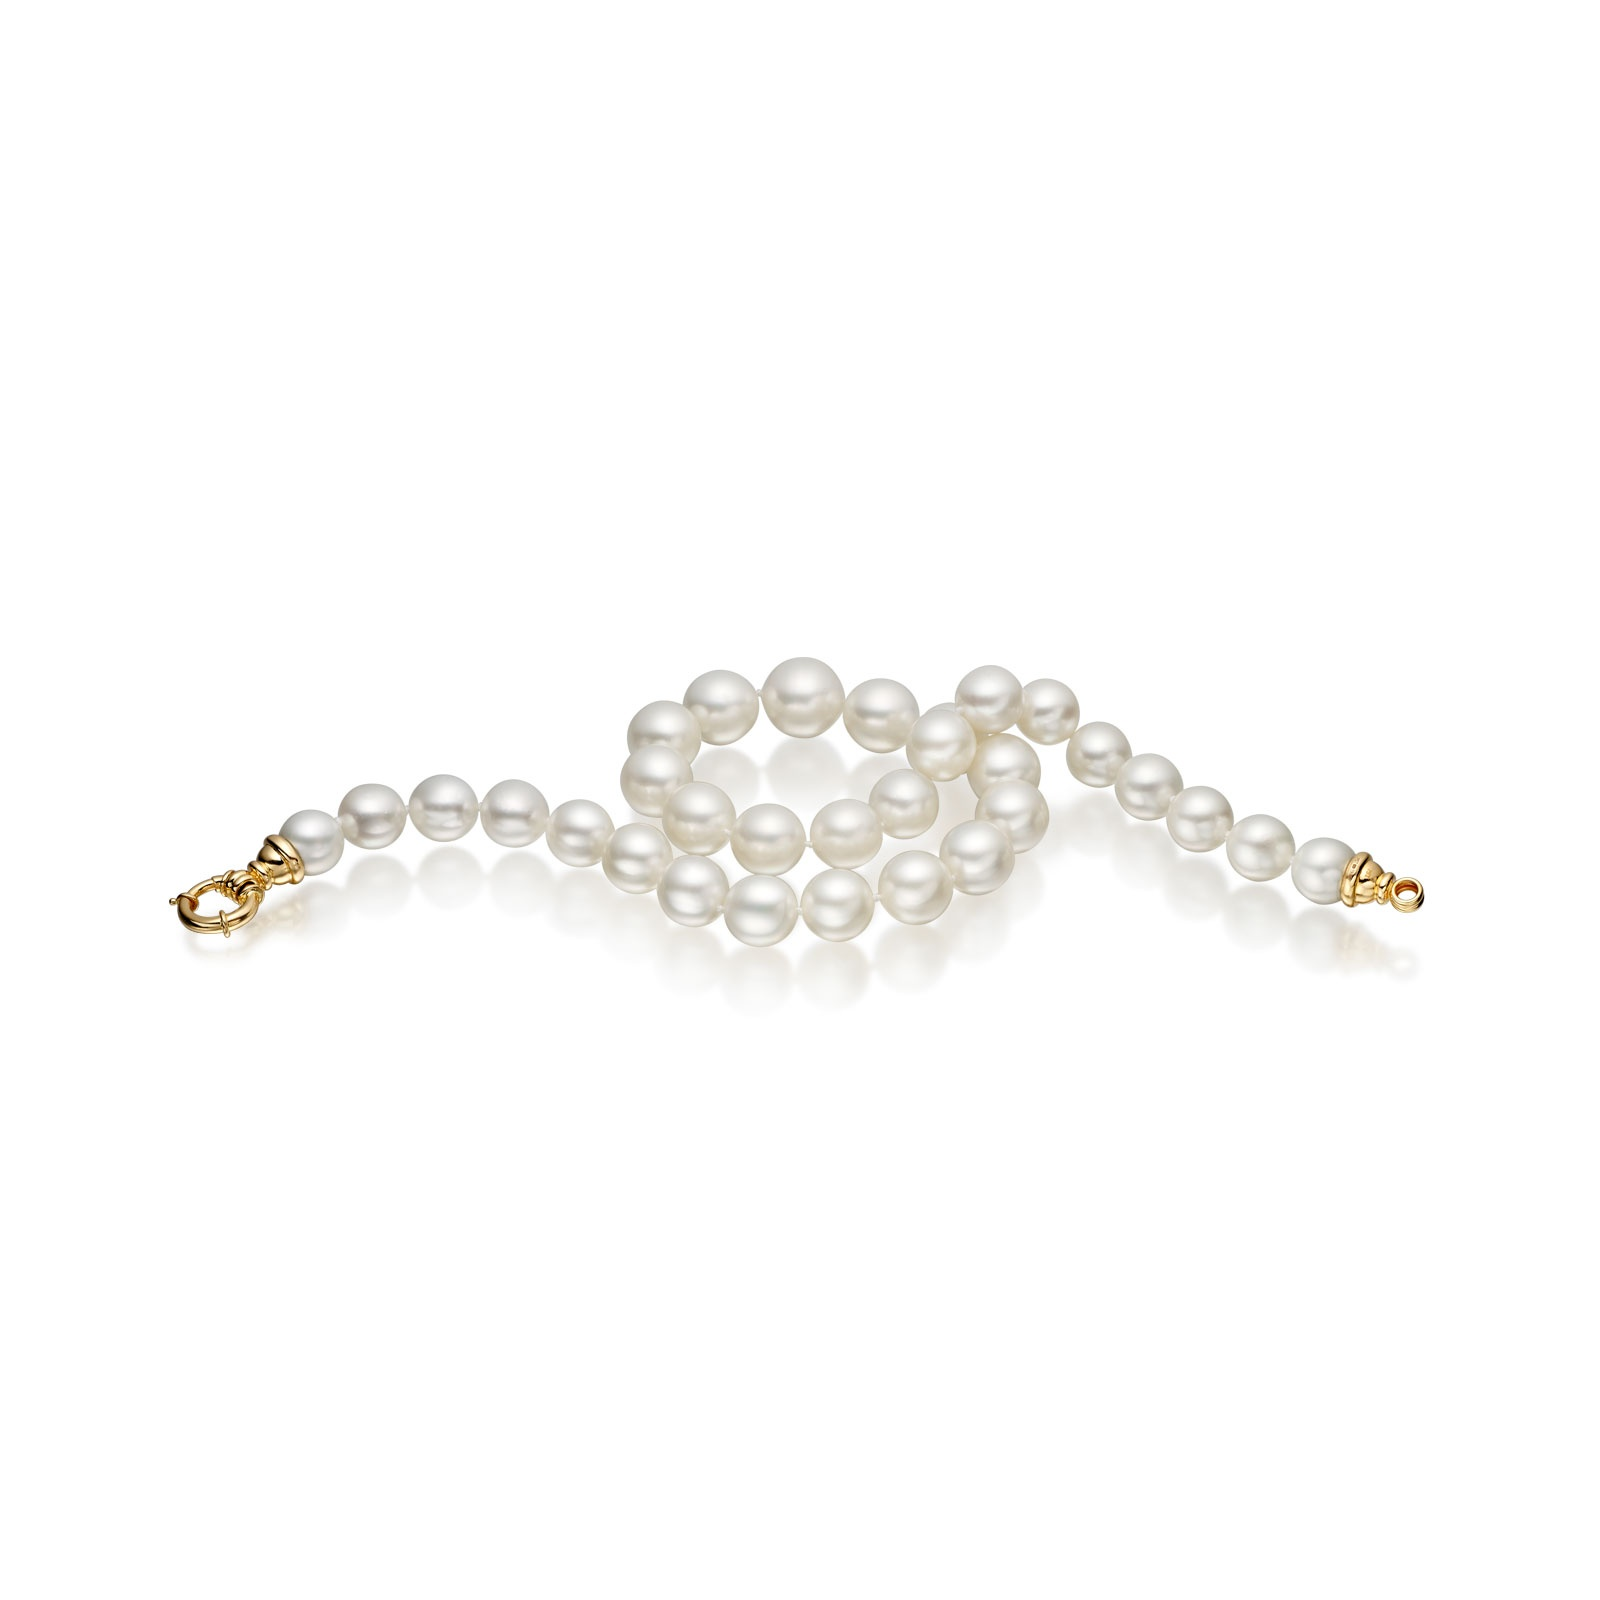 White South Sea Oval Pearl Necklace with 18ct Yellow Gold Clasp-SNWOYG0003-1